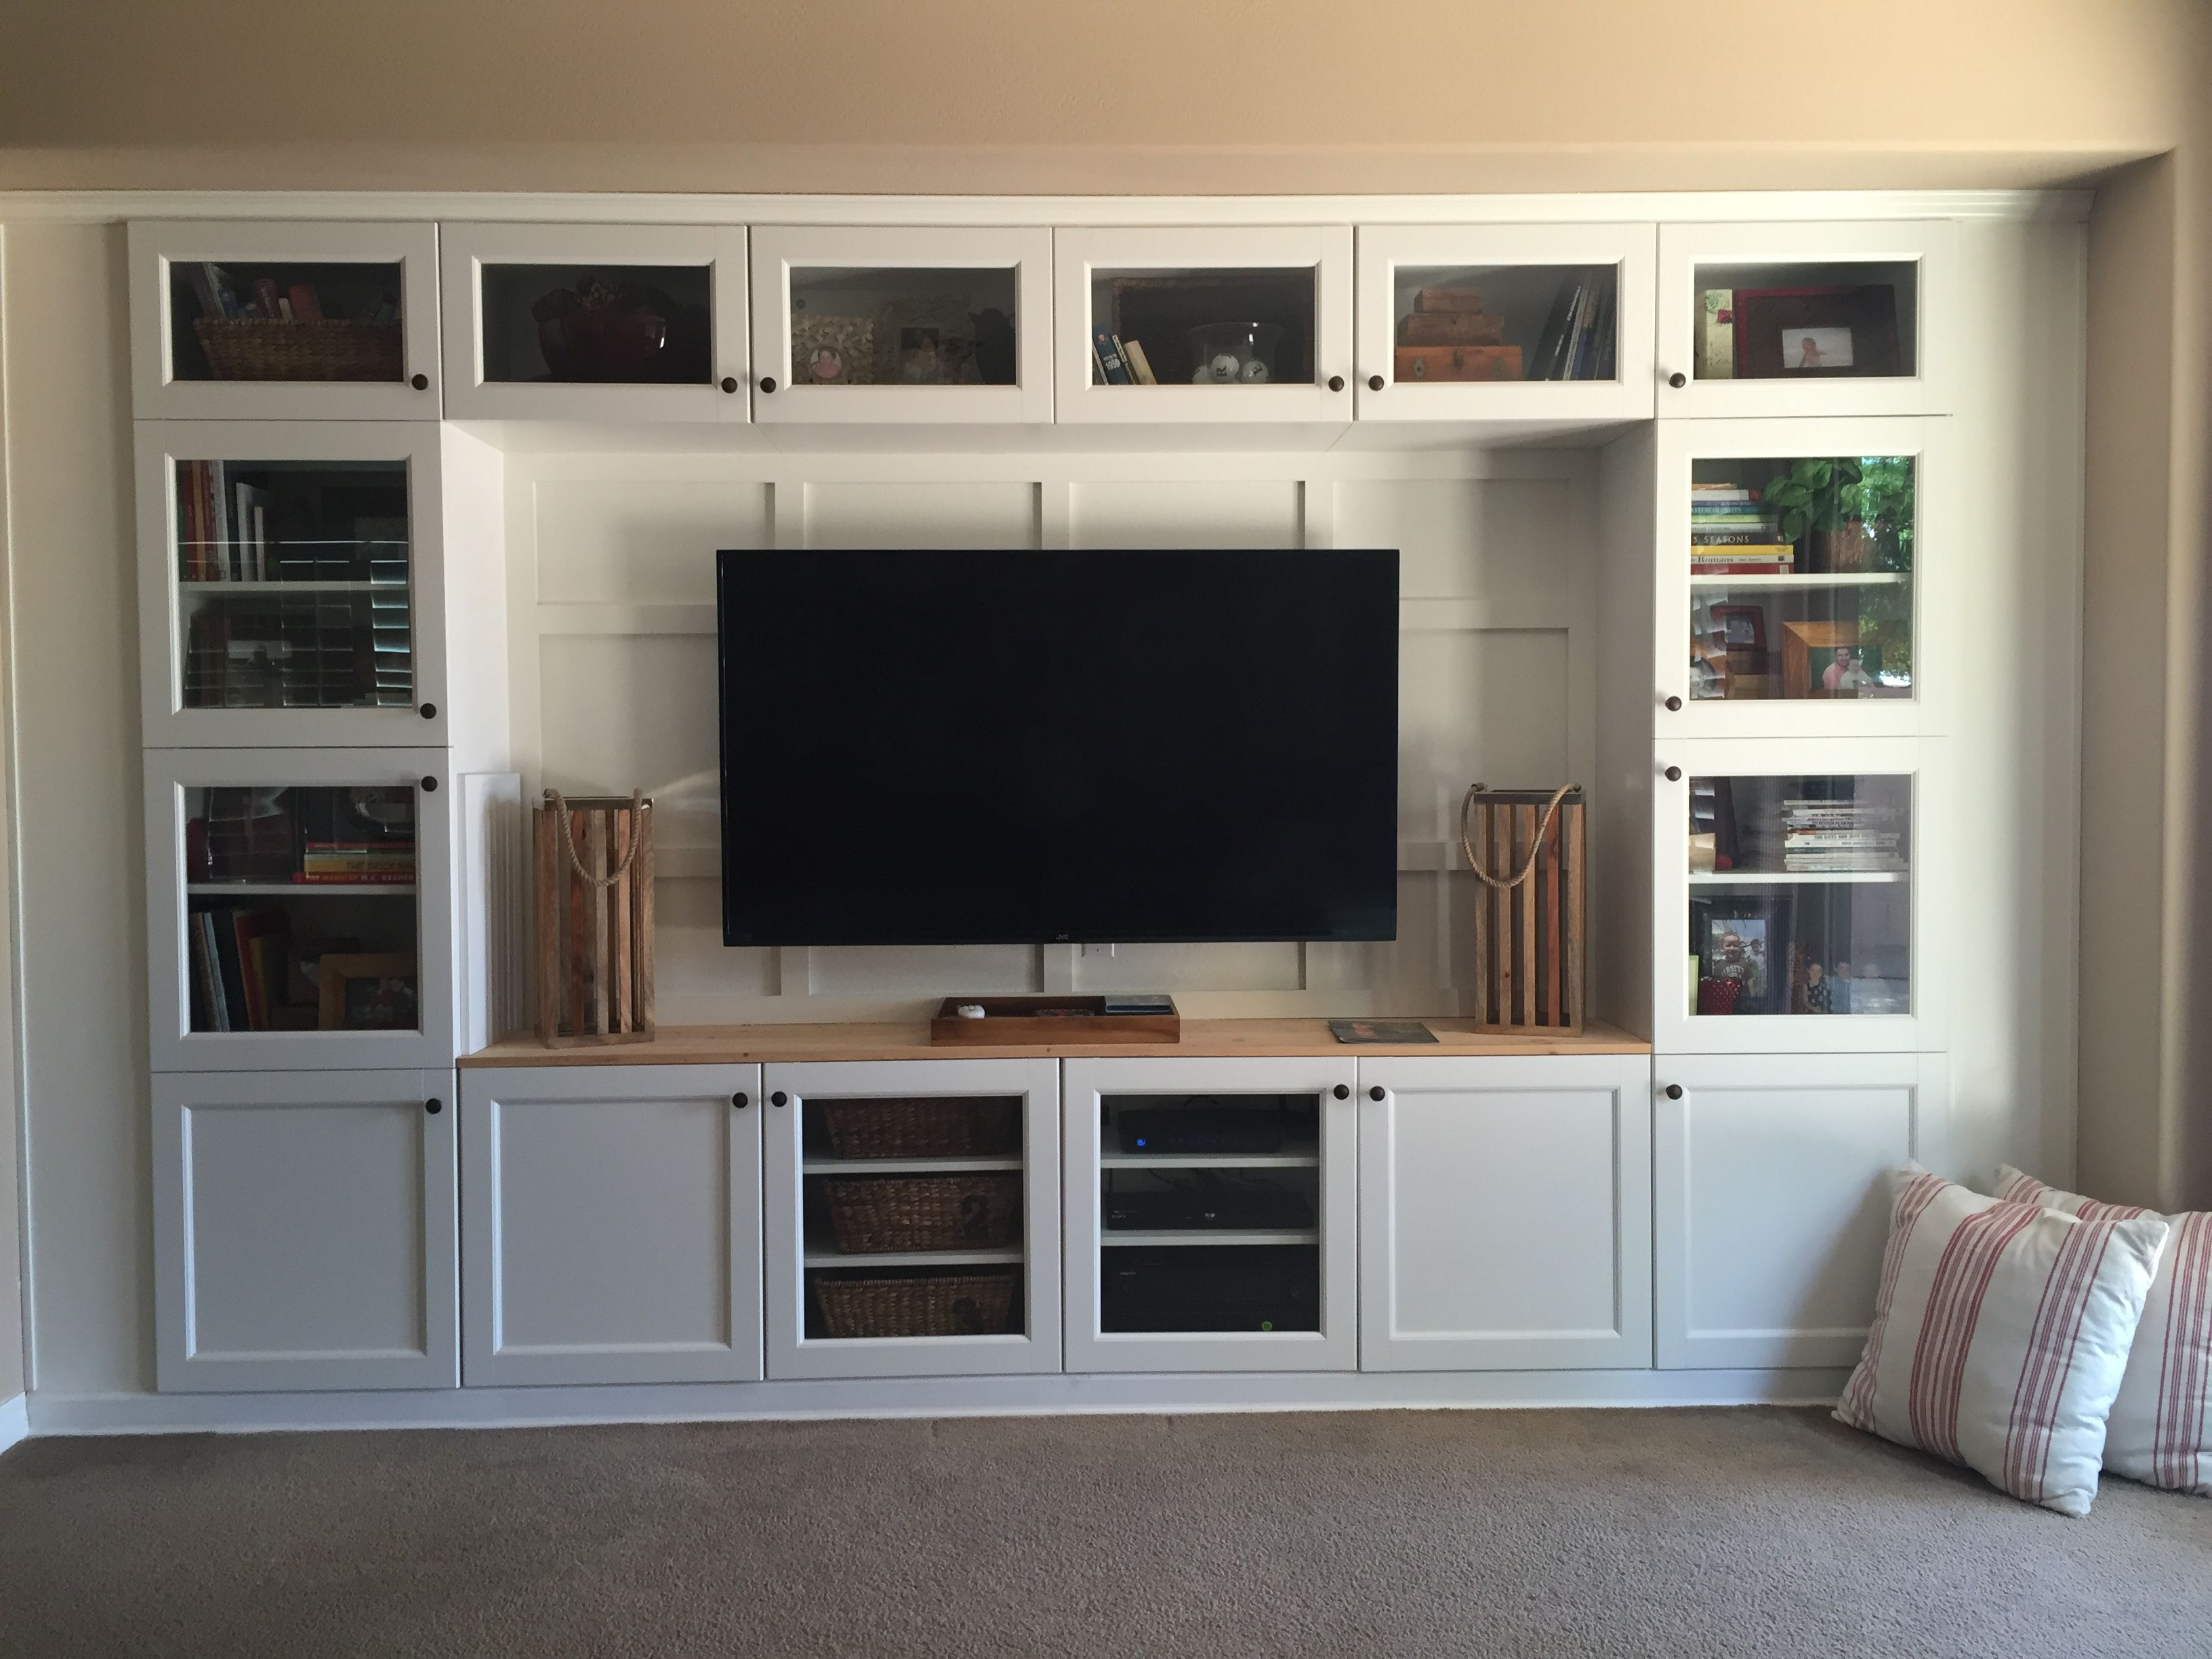 Built In Media Using Ikea Cabinets And Lumber Ikea Built In Built In Cabinets Living Room Cabinets